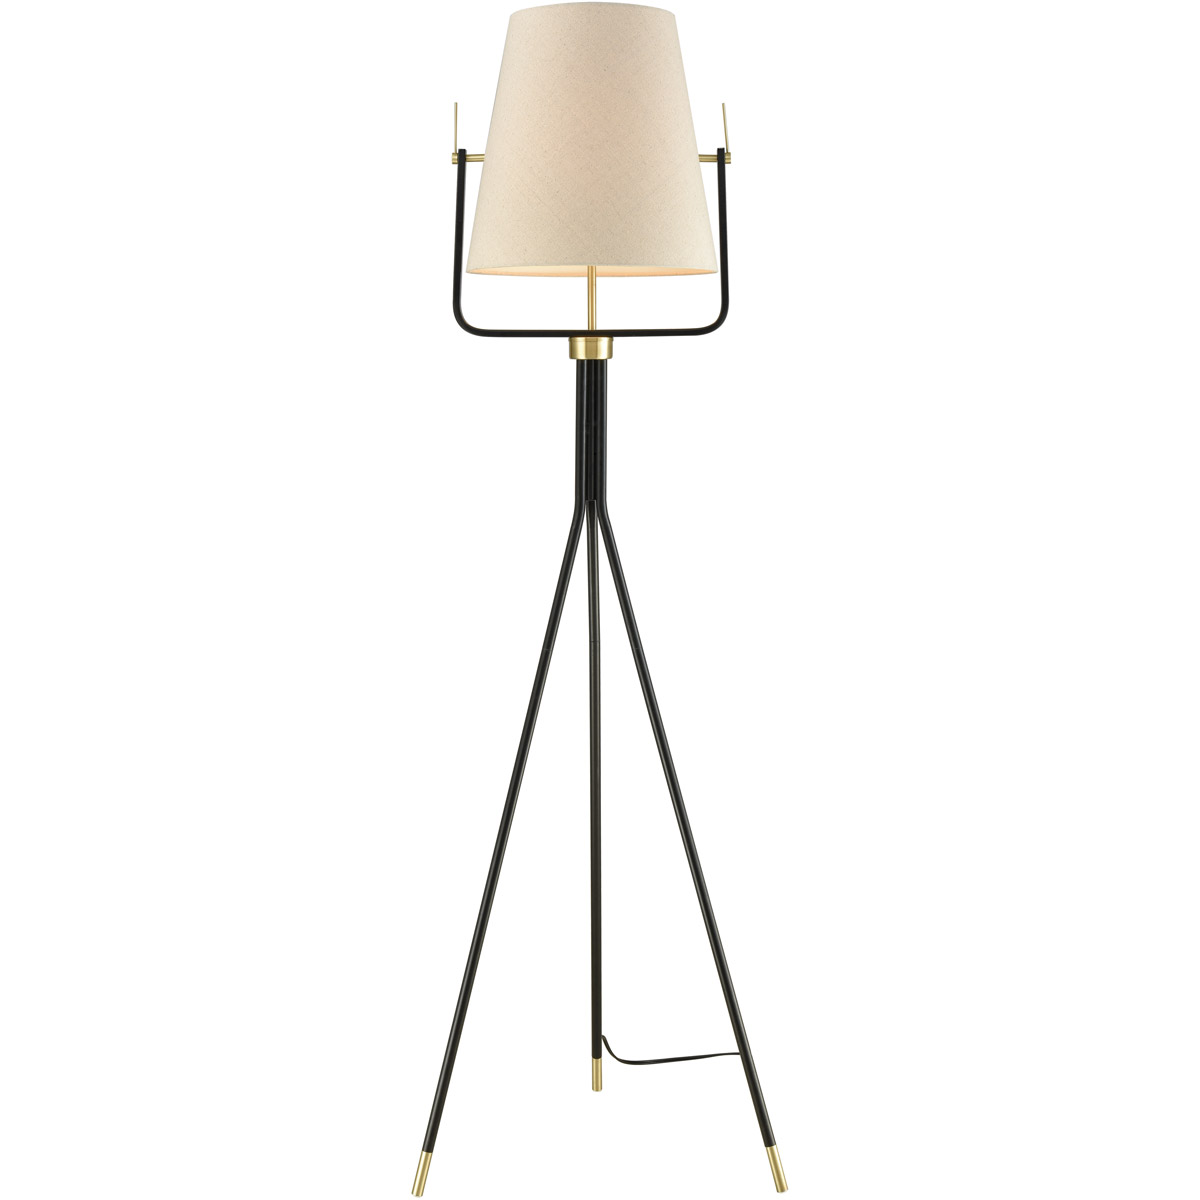 Dimond Lighting D3367 Cromwell Floor Lamp Black And Brass 843558153732 Ebay